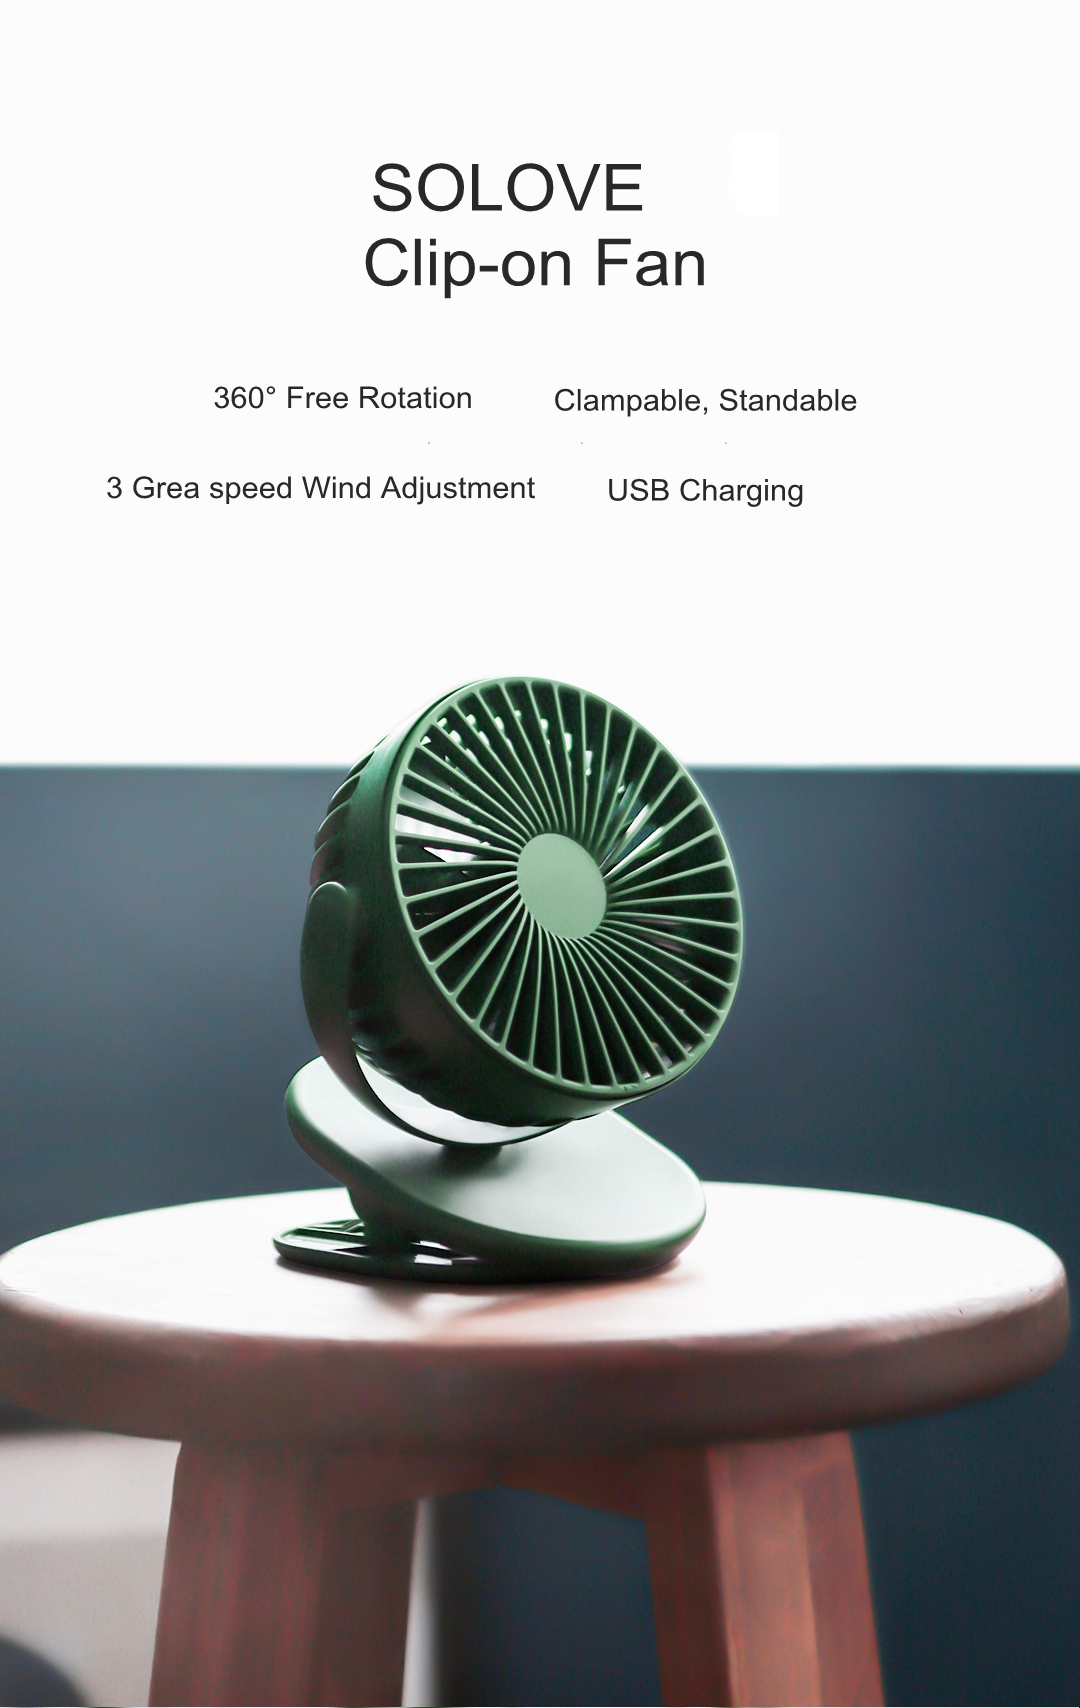 XIAOMI SOLOVE 360 Degree Rotating USB Clip-on Mini Fan